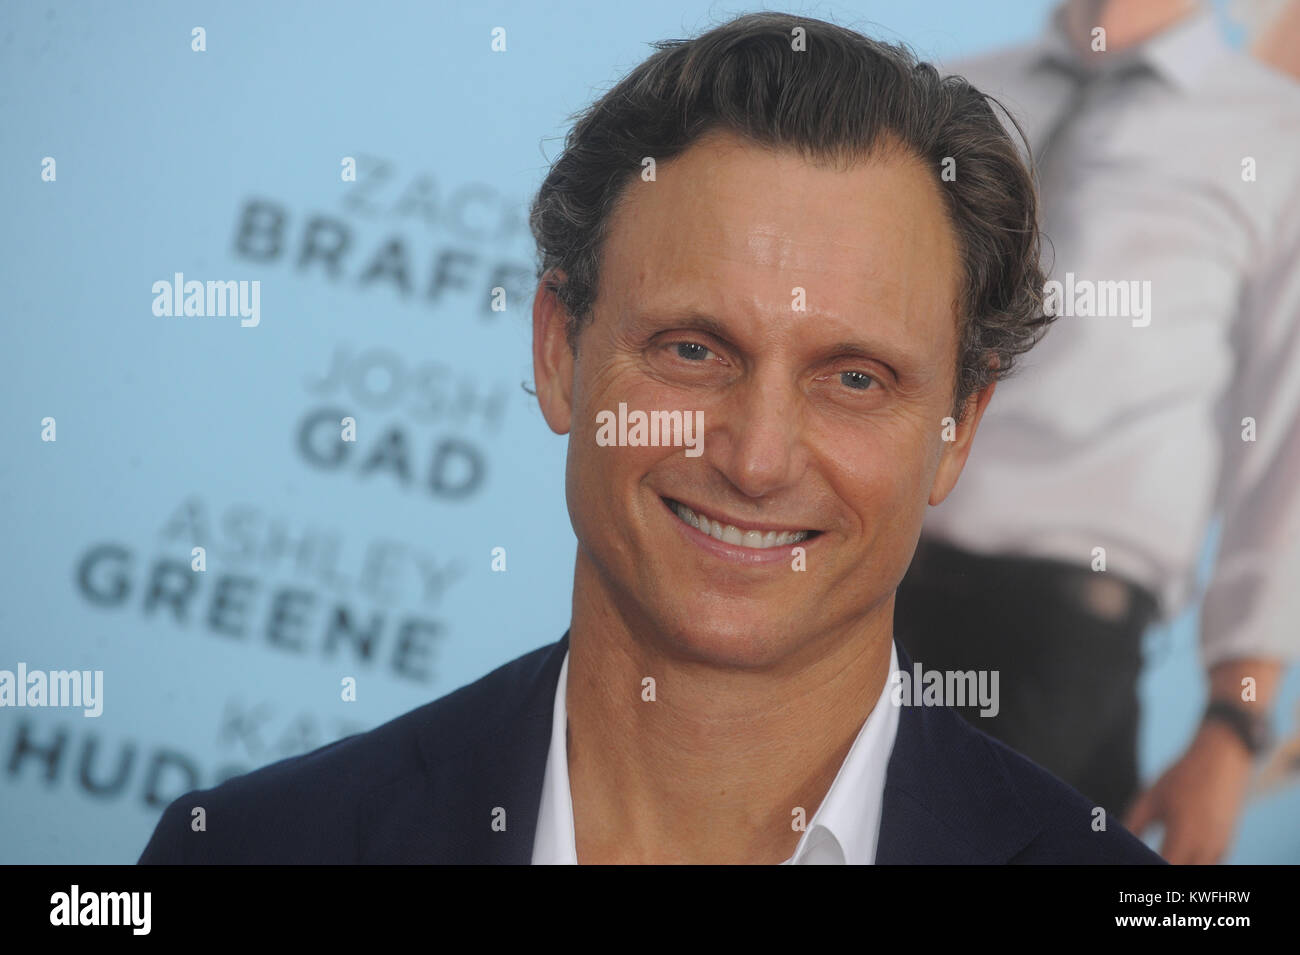 NEW YORK, NY - JULY 14: Tony Goldwyn attends the 'Wish I Was Here' screening at AMC Lincoln Square Theater - Stock Image